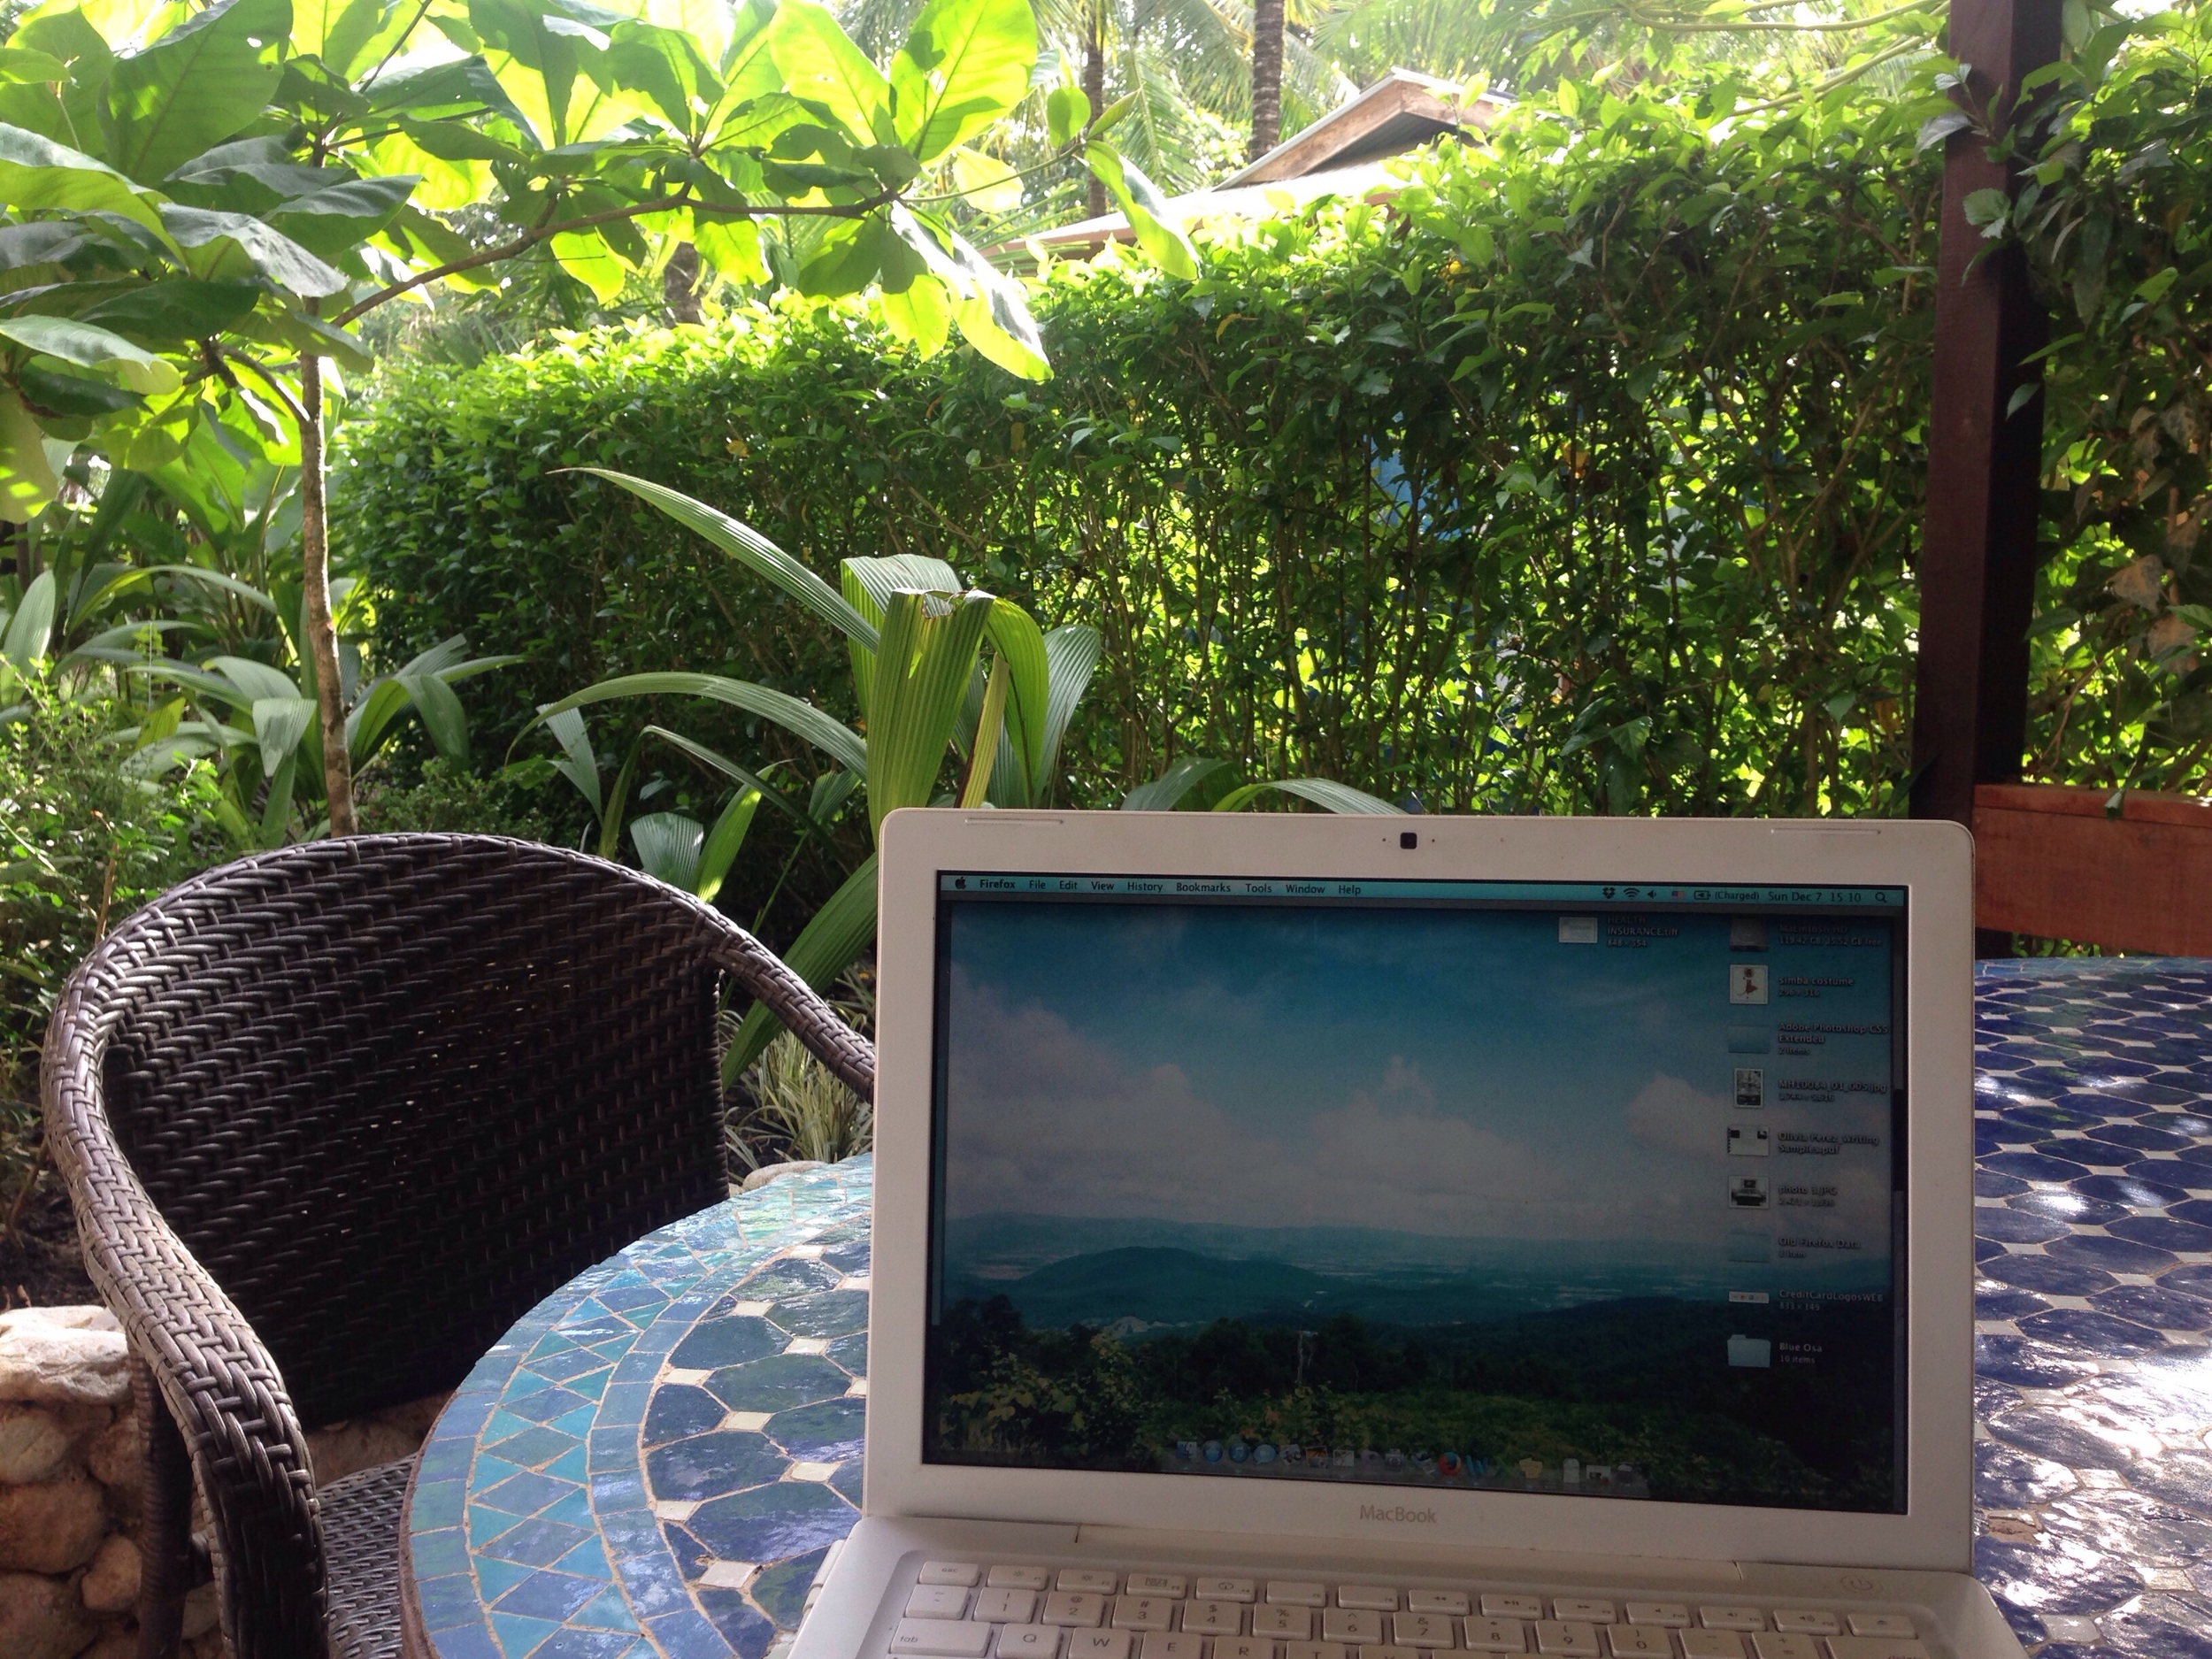 My time here isn't all play. I am working on Blue Osa's blog and social media as a writer, and have full days writing and proofreading near beautiful scenery, while trying to squeeze in yoga practice.